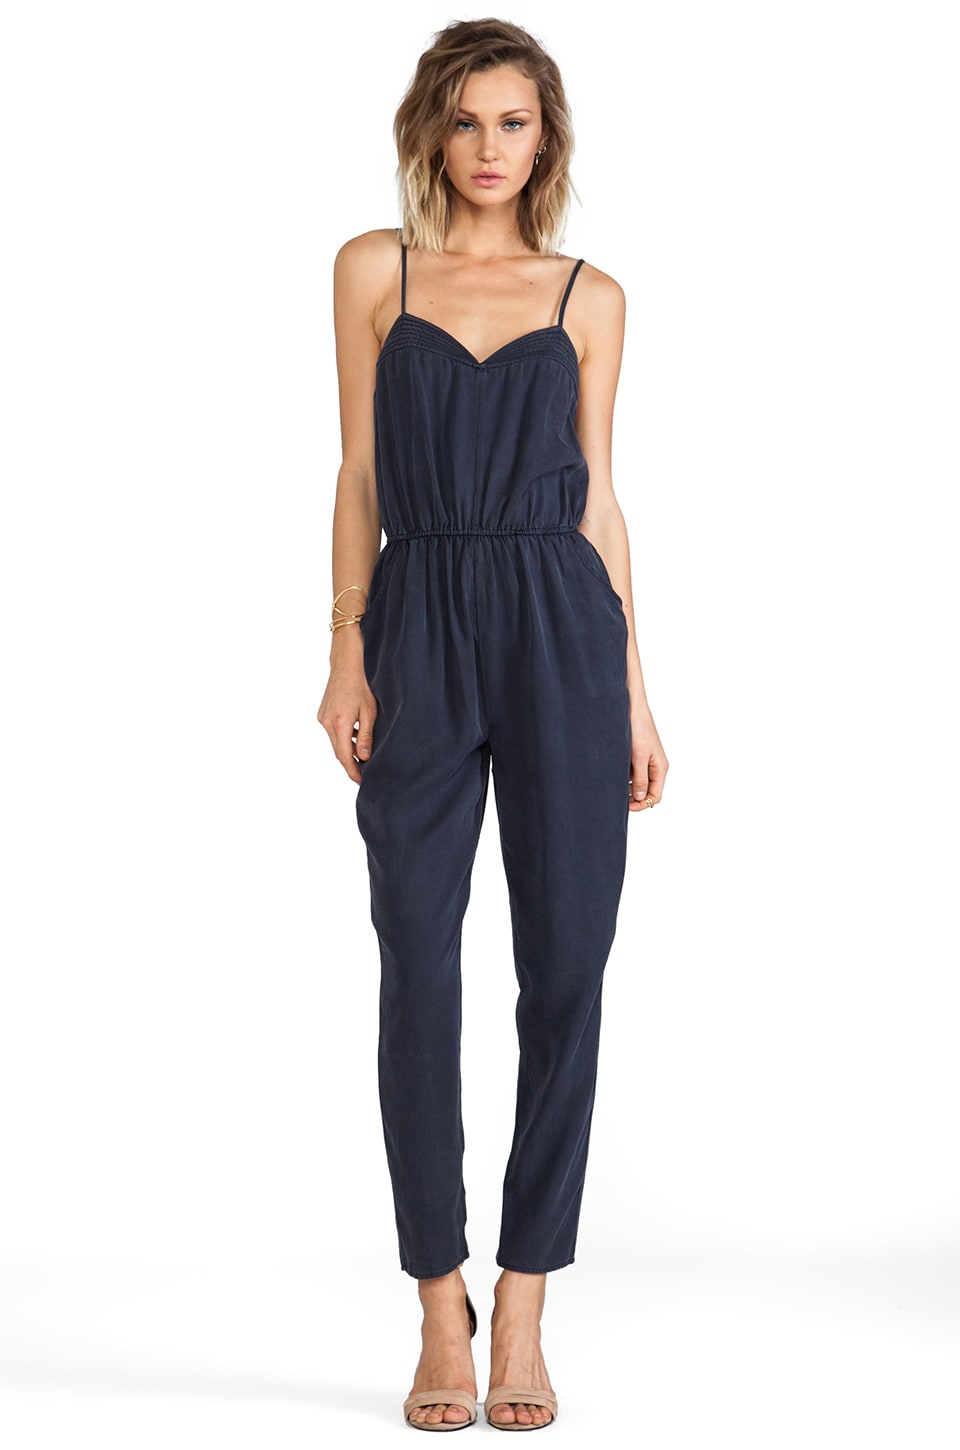 Finders Keepers Metropolis Jumpsuit in Navy